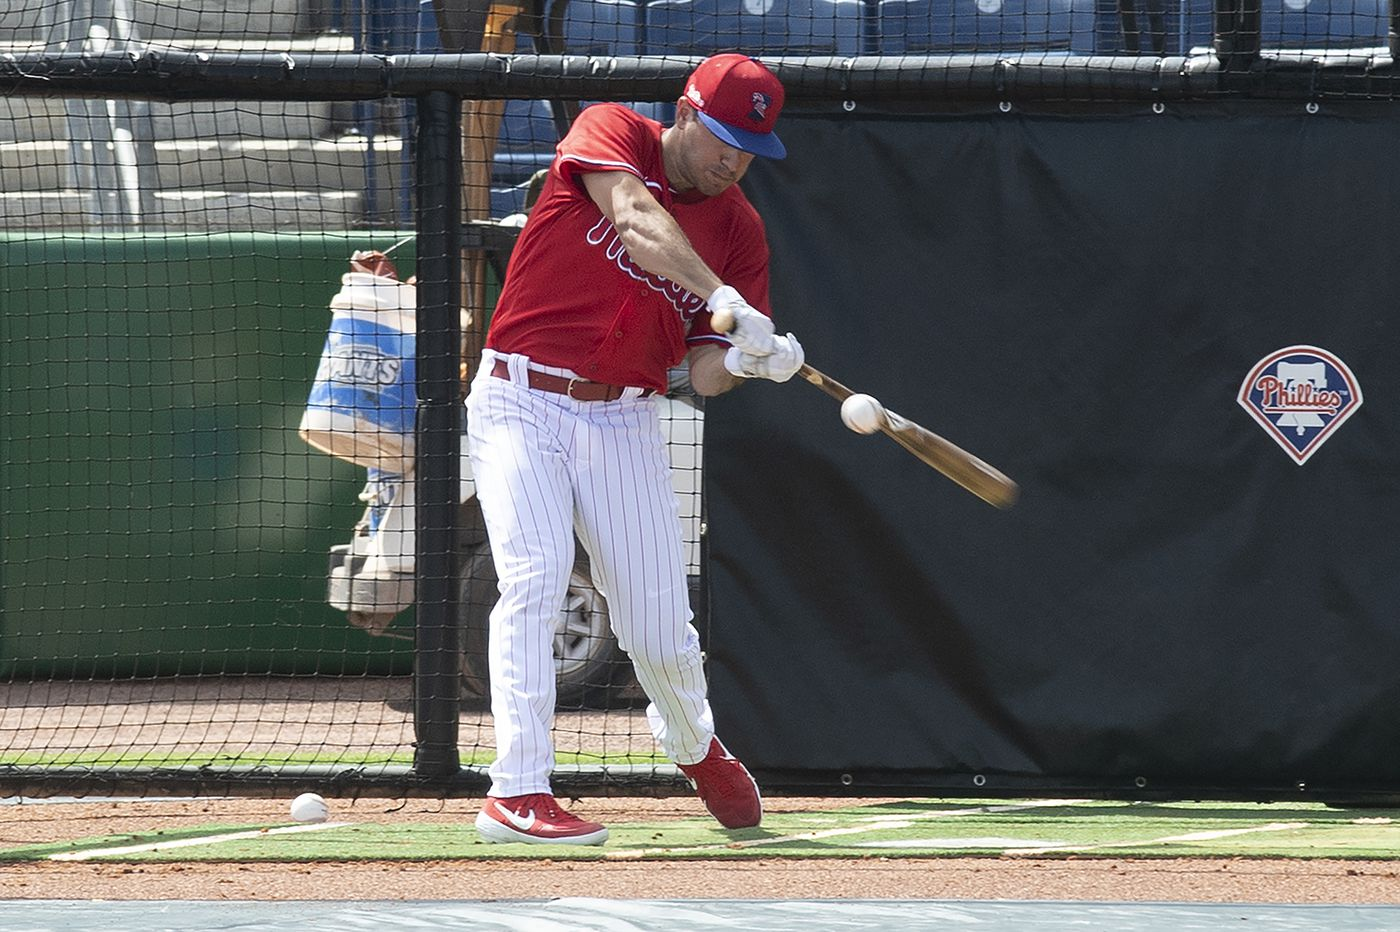 Phillies have high hopes for center field with Adam Haseley and Roman Quinn | Bob Brookover